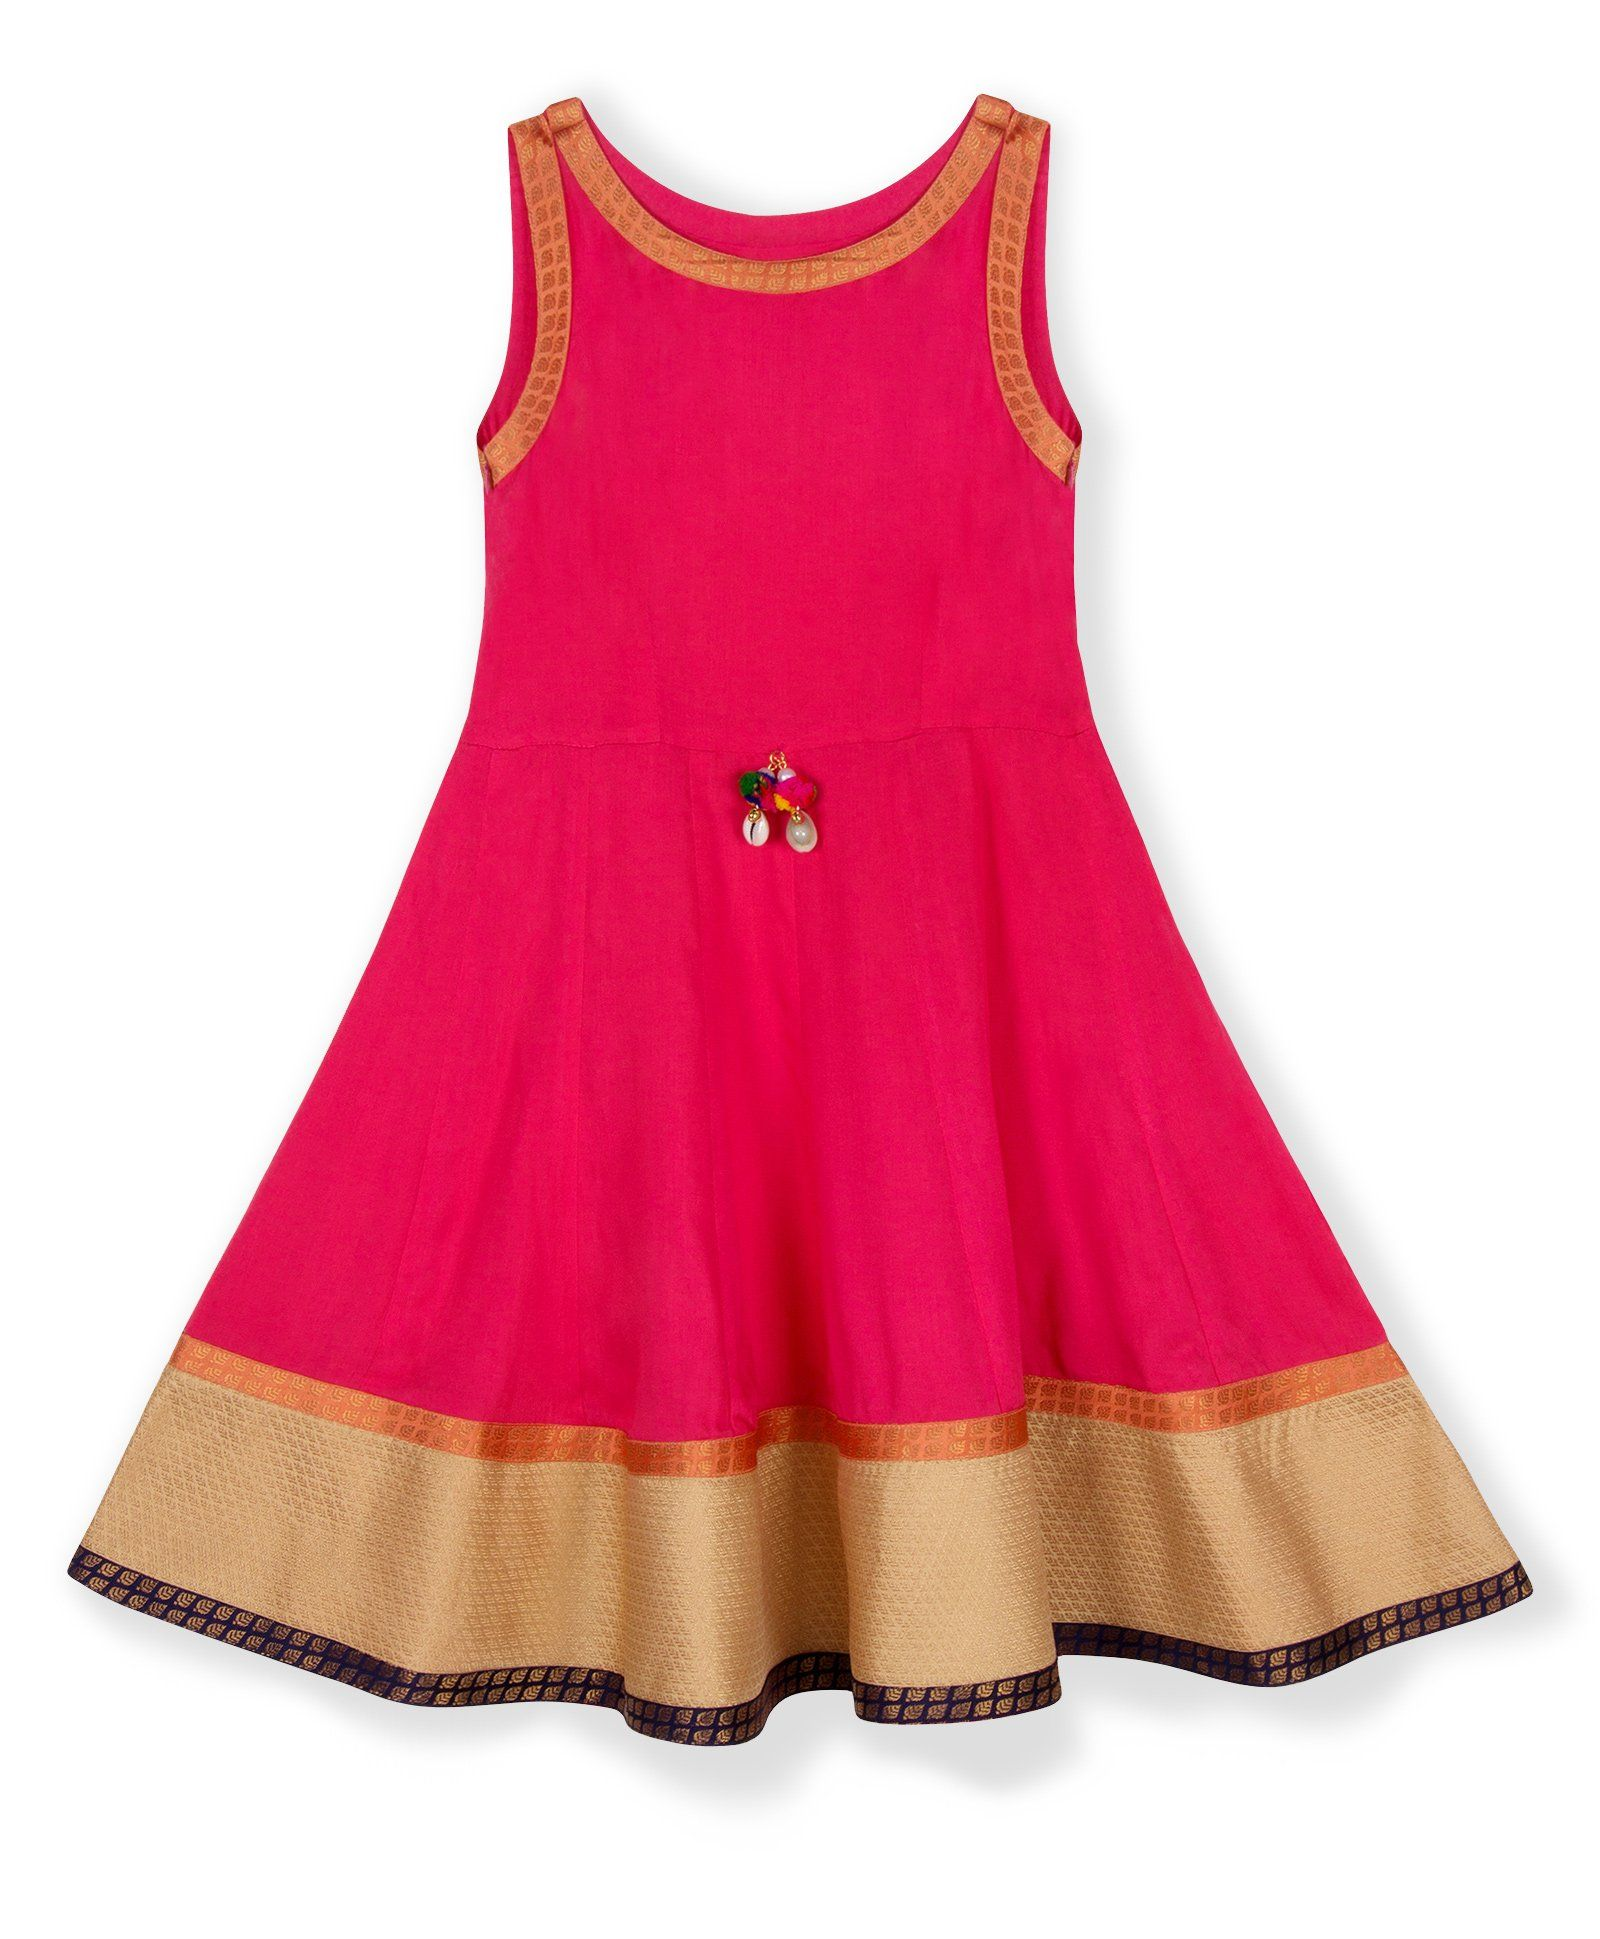 7e63bc0b8 Buy Silverthread Anarkali Style Indo Western Dress Pink for Girls (7-8  Years)